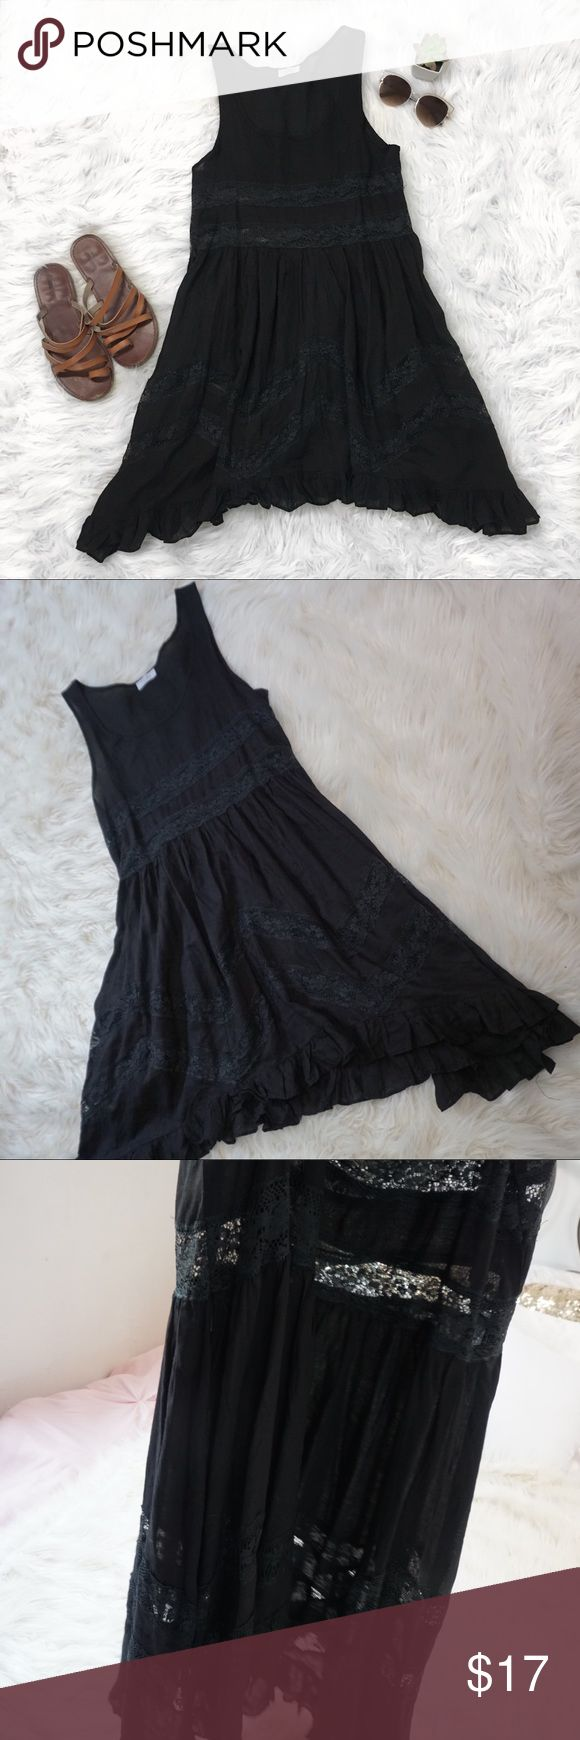 Little Black Dress Tobi Throw over dress Super cute dress! It's very flows and fresh. No flaws, great condition. The lacing is see through so I would recomendable throwing something under. It can also be used for a super cute bikini cover up! No size shown but fits medium. Tobi Swim Coverups